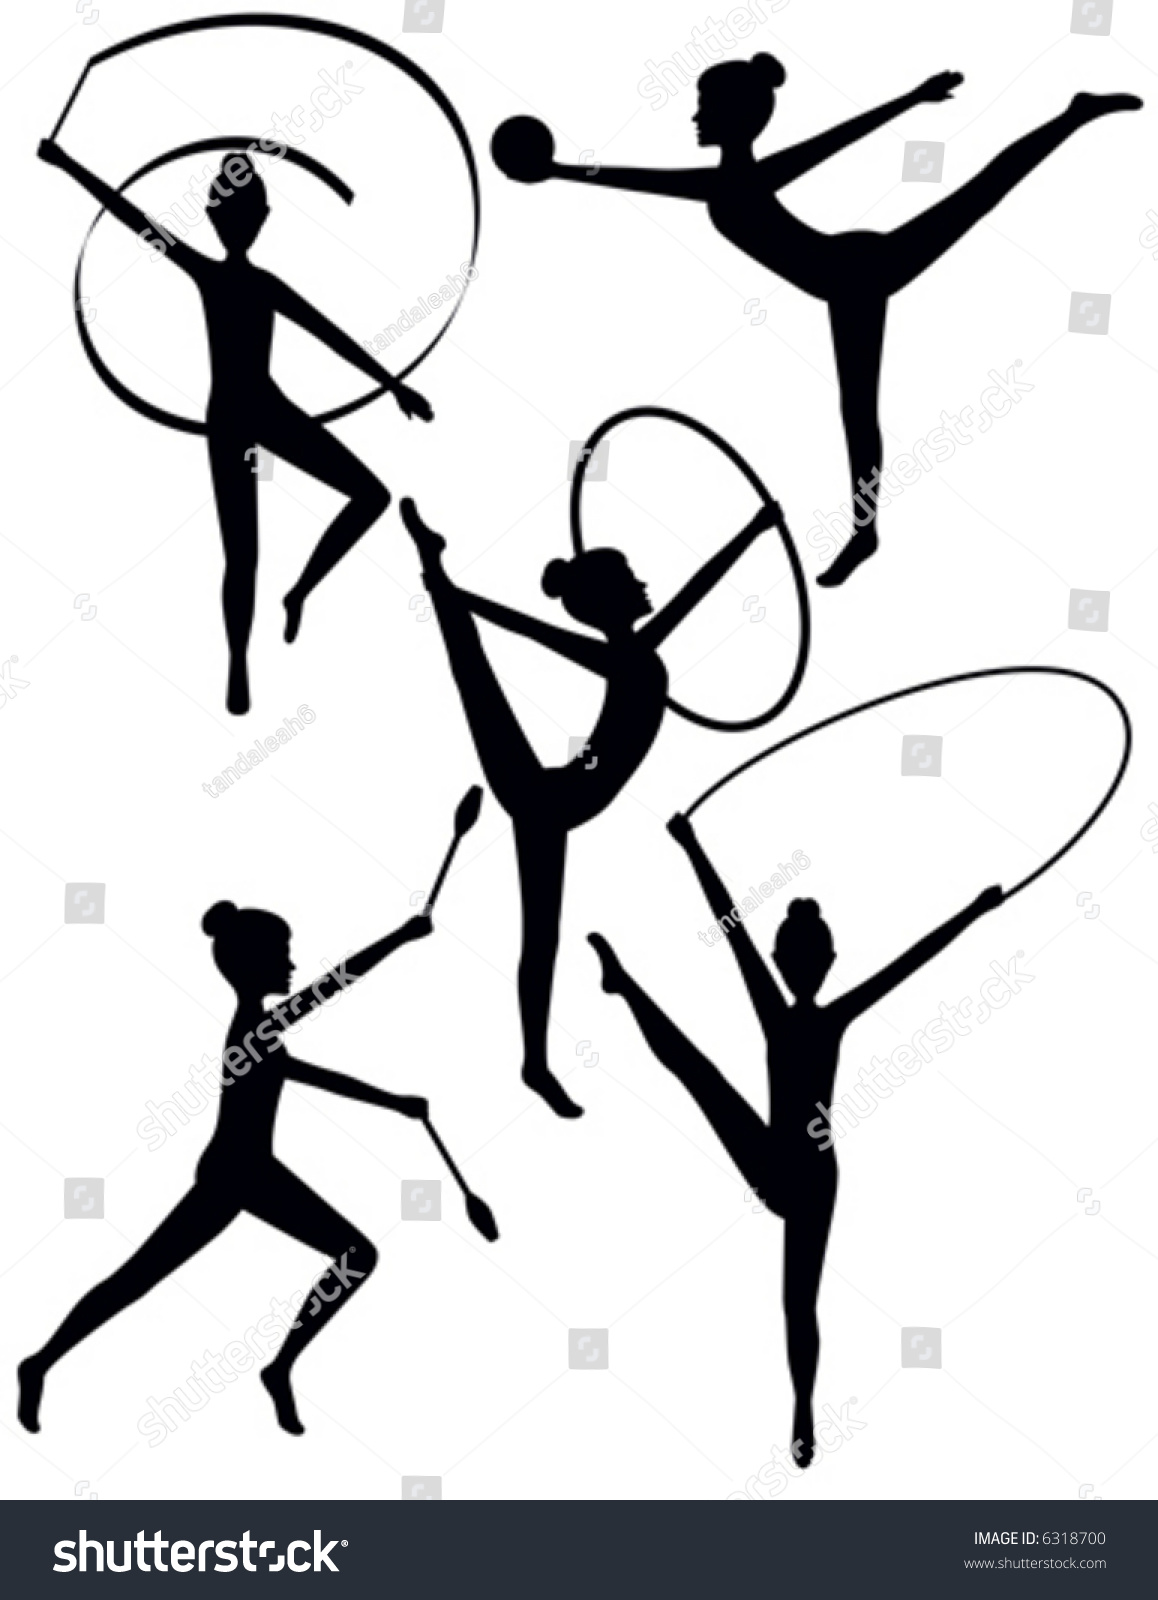 vector rhythmic gymnast silhouettes the ribbon hoop clubs and jump rope are separate